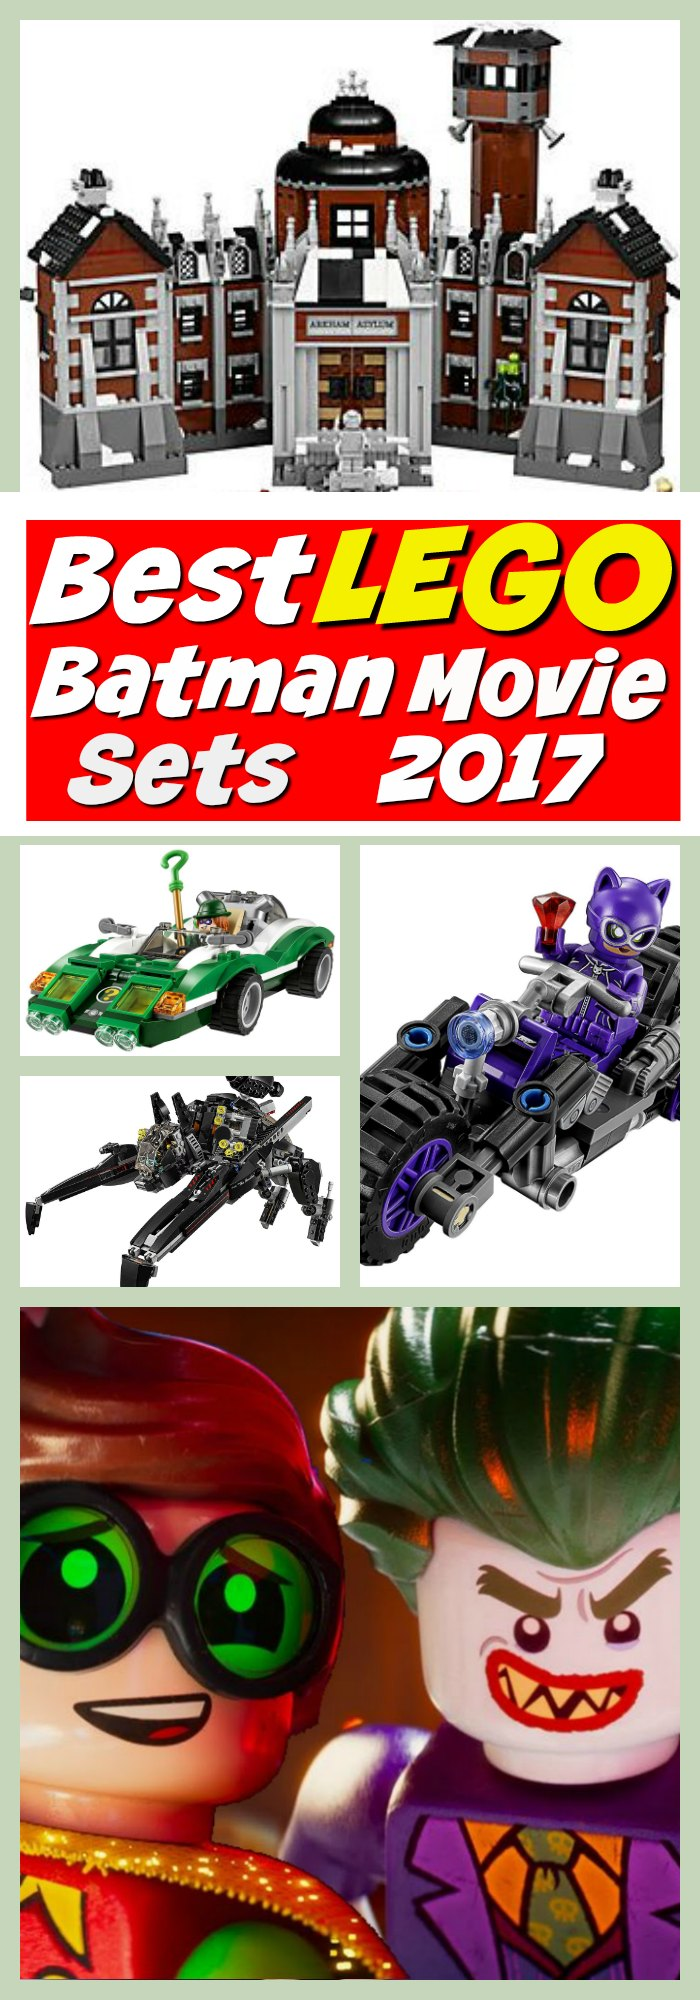 Best LEGO Batman Movie Sets 2017